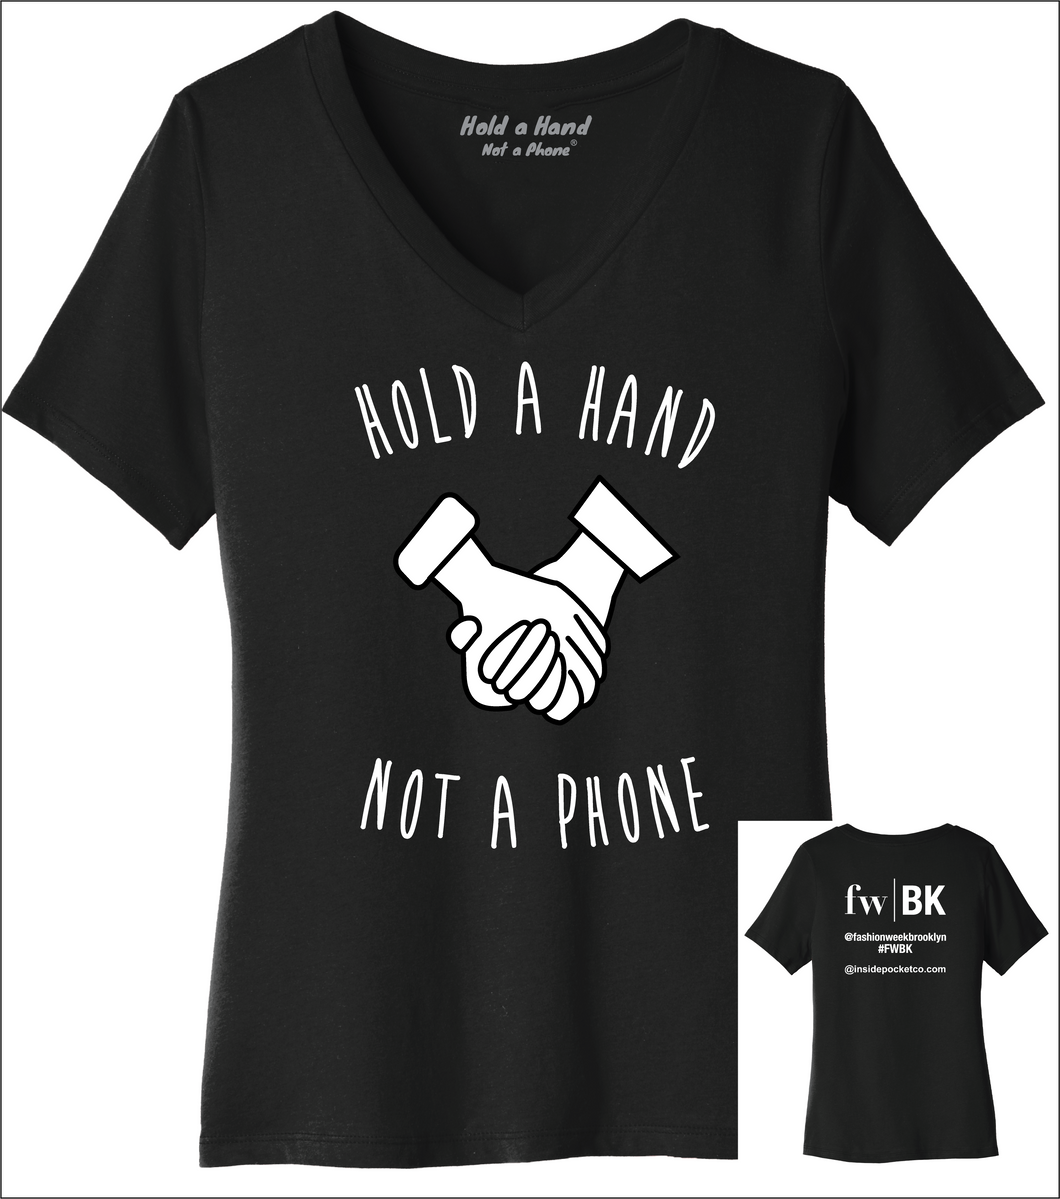 Ladies V-Neck - FWBK Edition (Black or Grey)